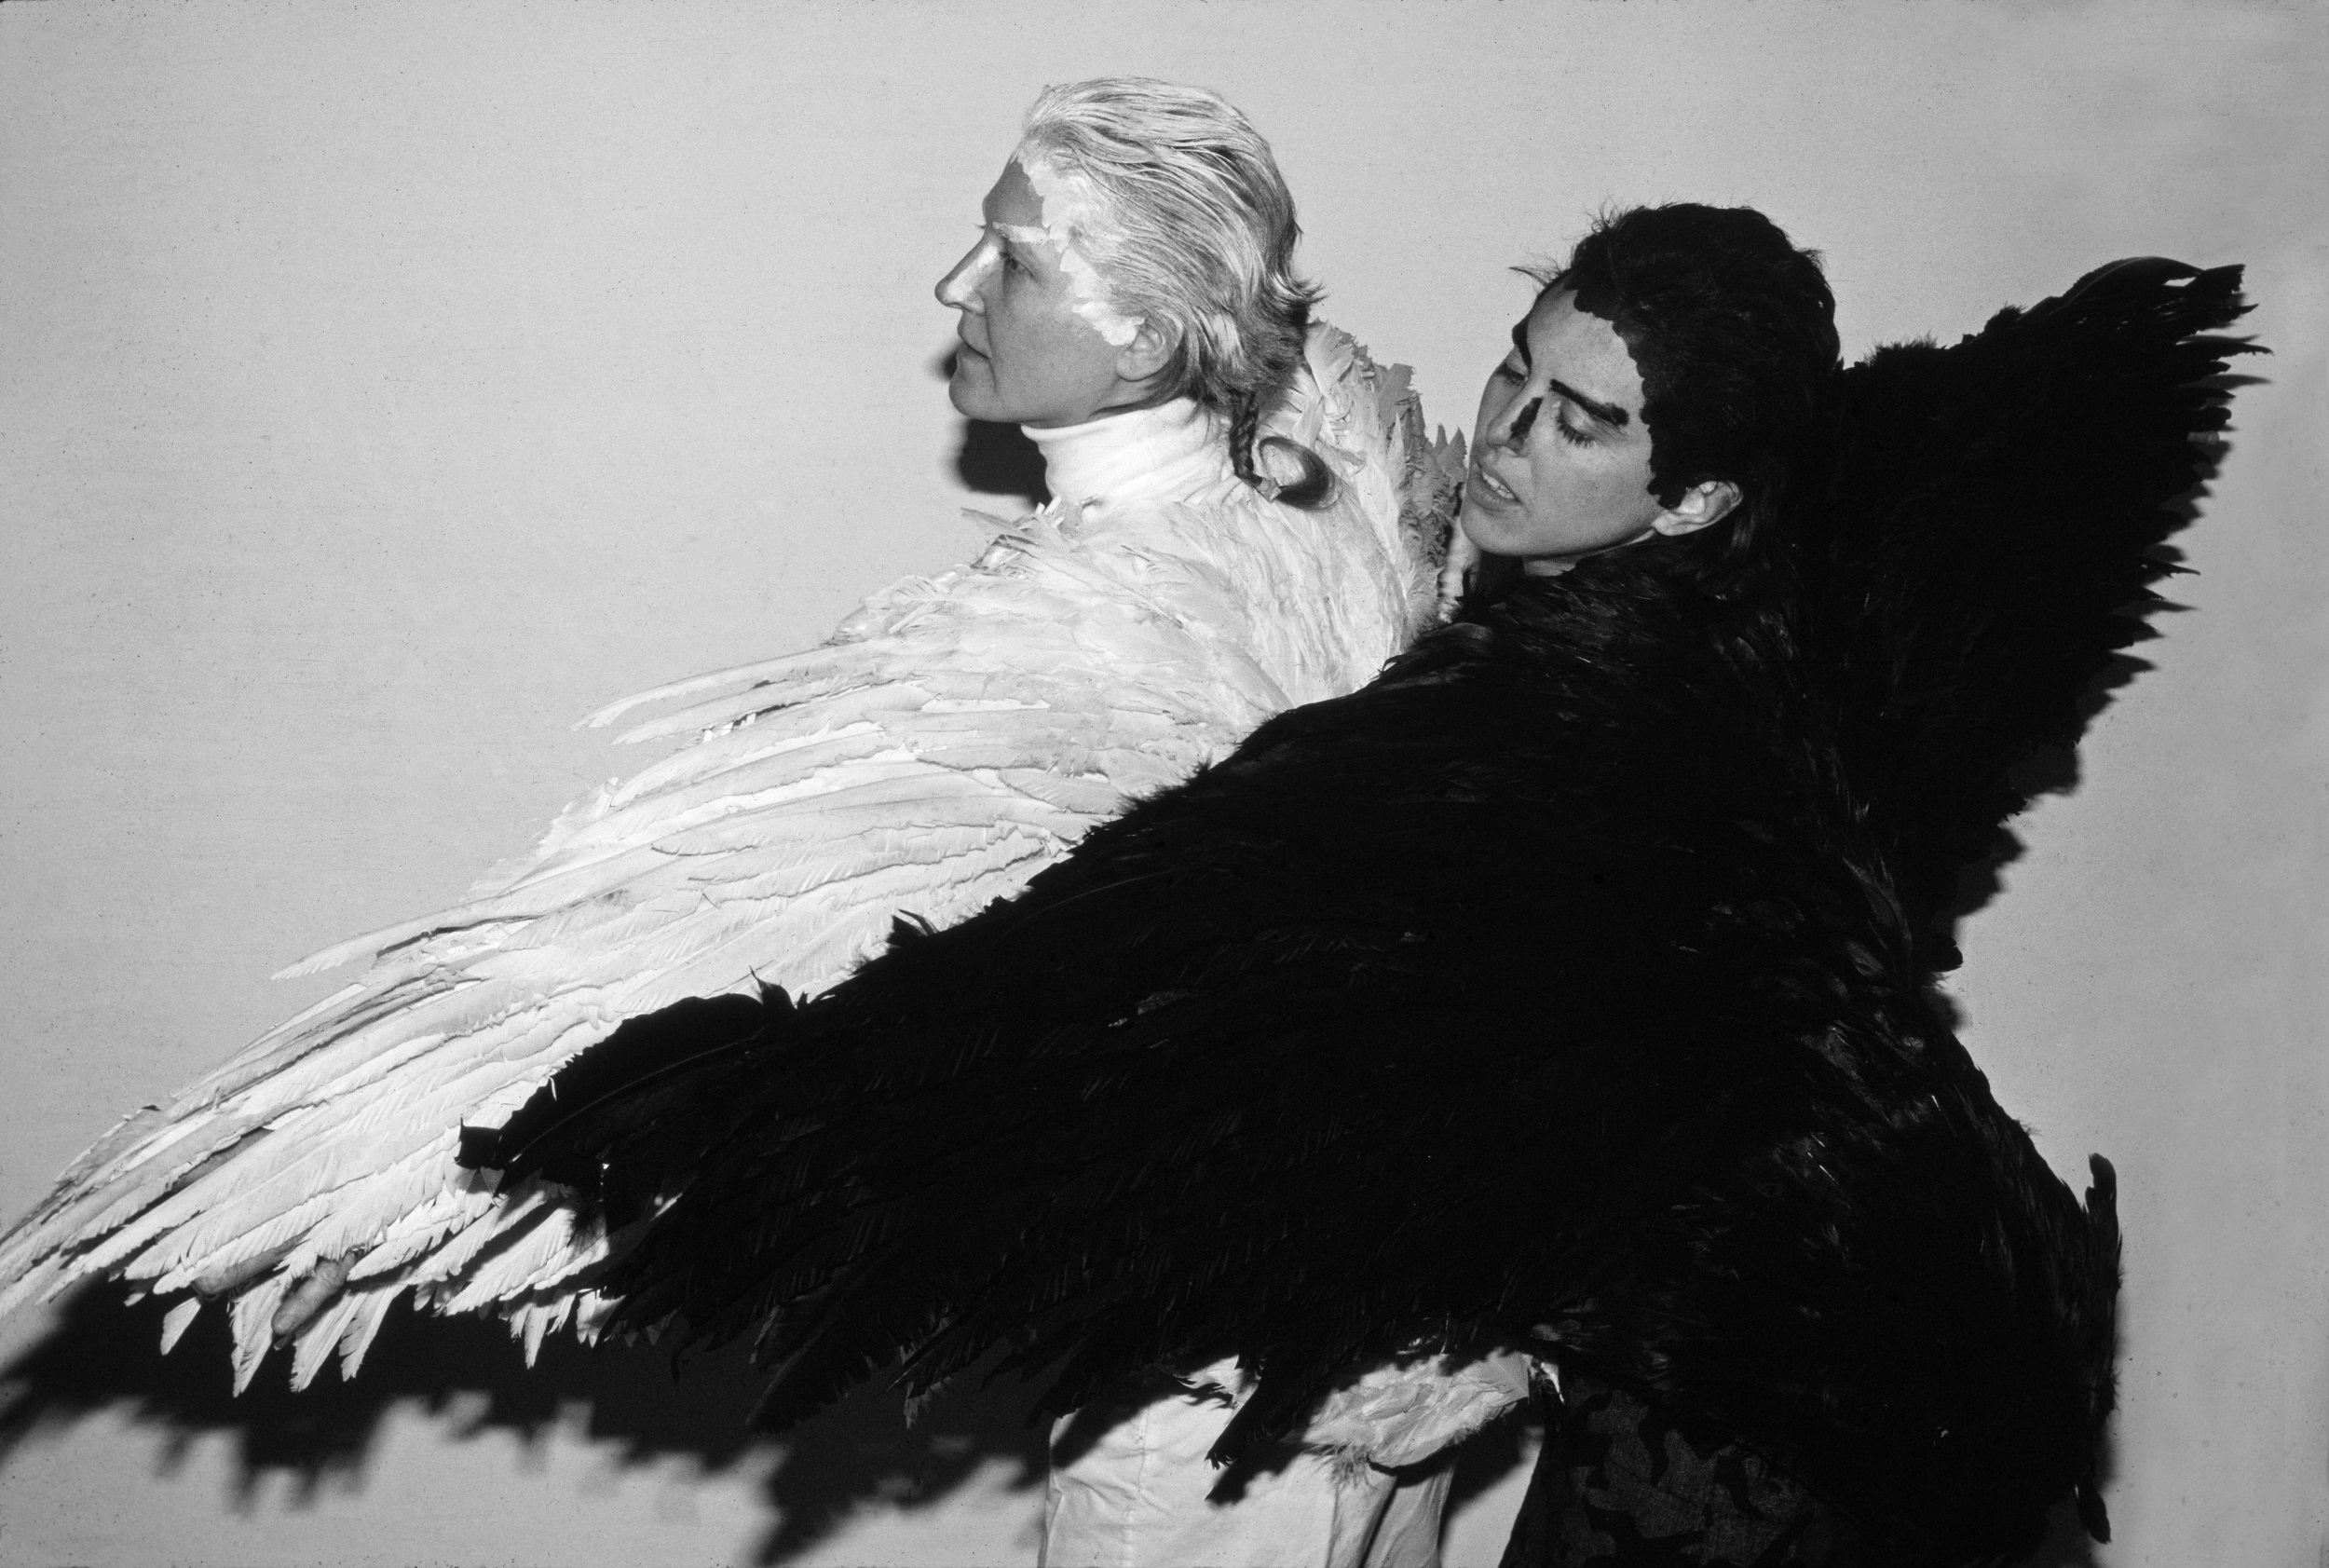 Two performers have their left arms outstretched. The one in the front is wearing a costume made of black feathers and the one in the back is wearing a costume made of white feathers.